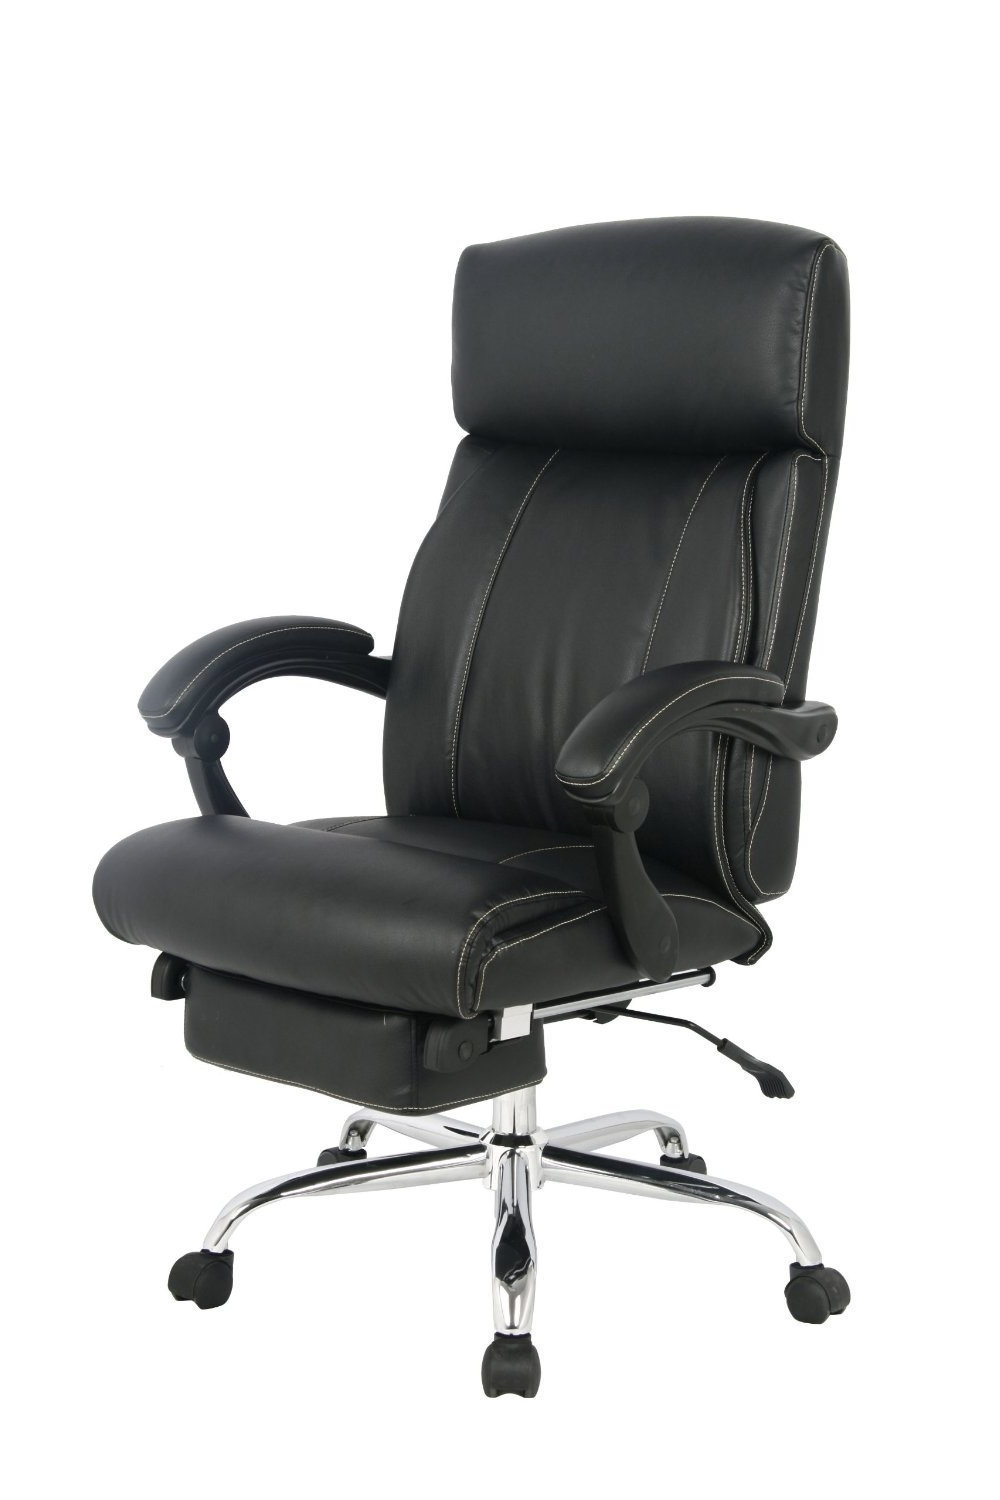 Cheap Reclining Office Chair With Footrest, Find Reclining Office For Most Current Executive Office Chairs With Footrest (View 8 of 20)